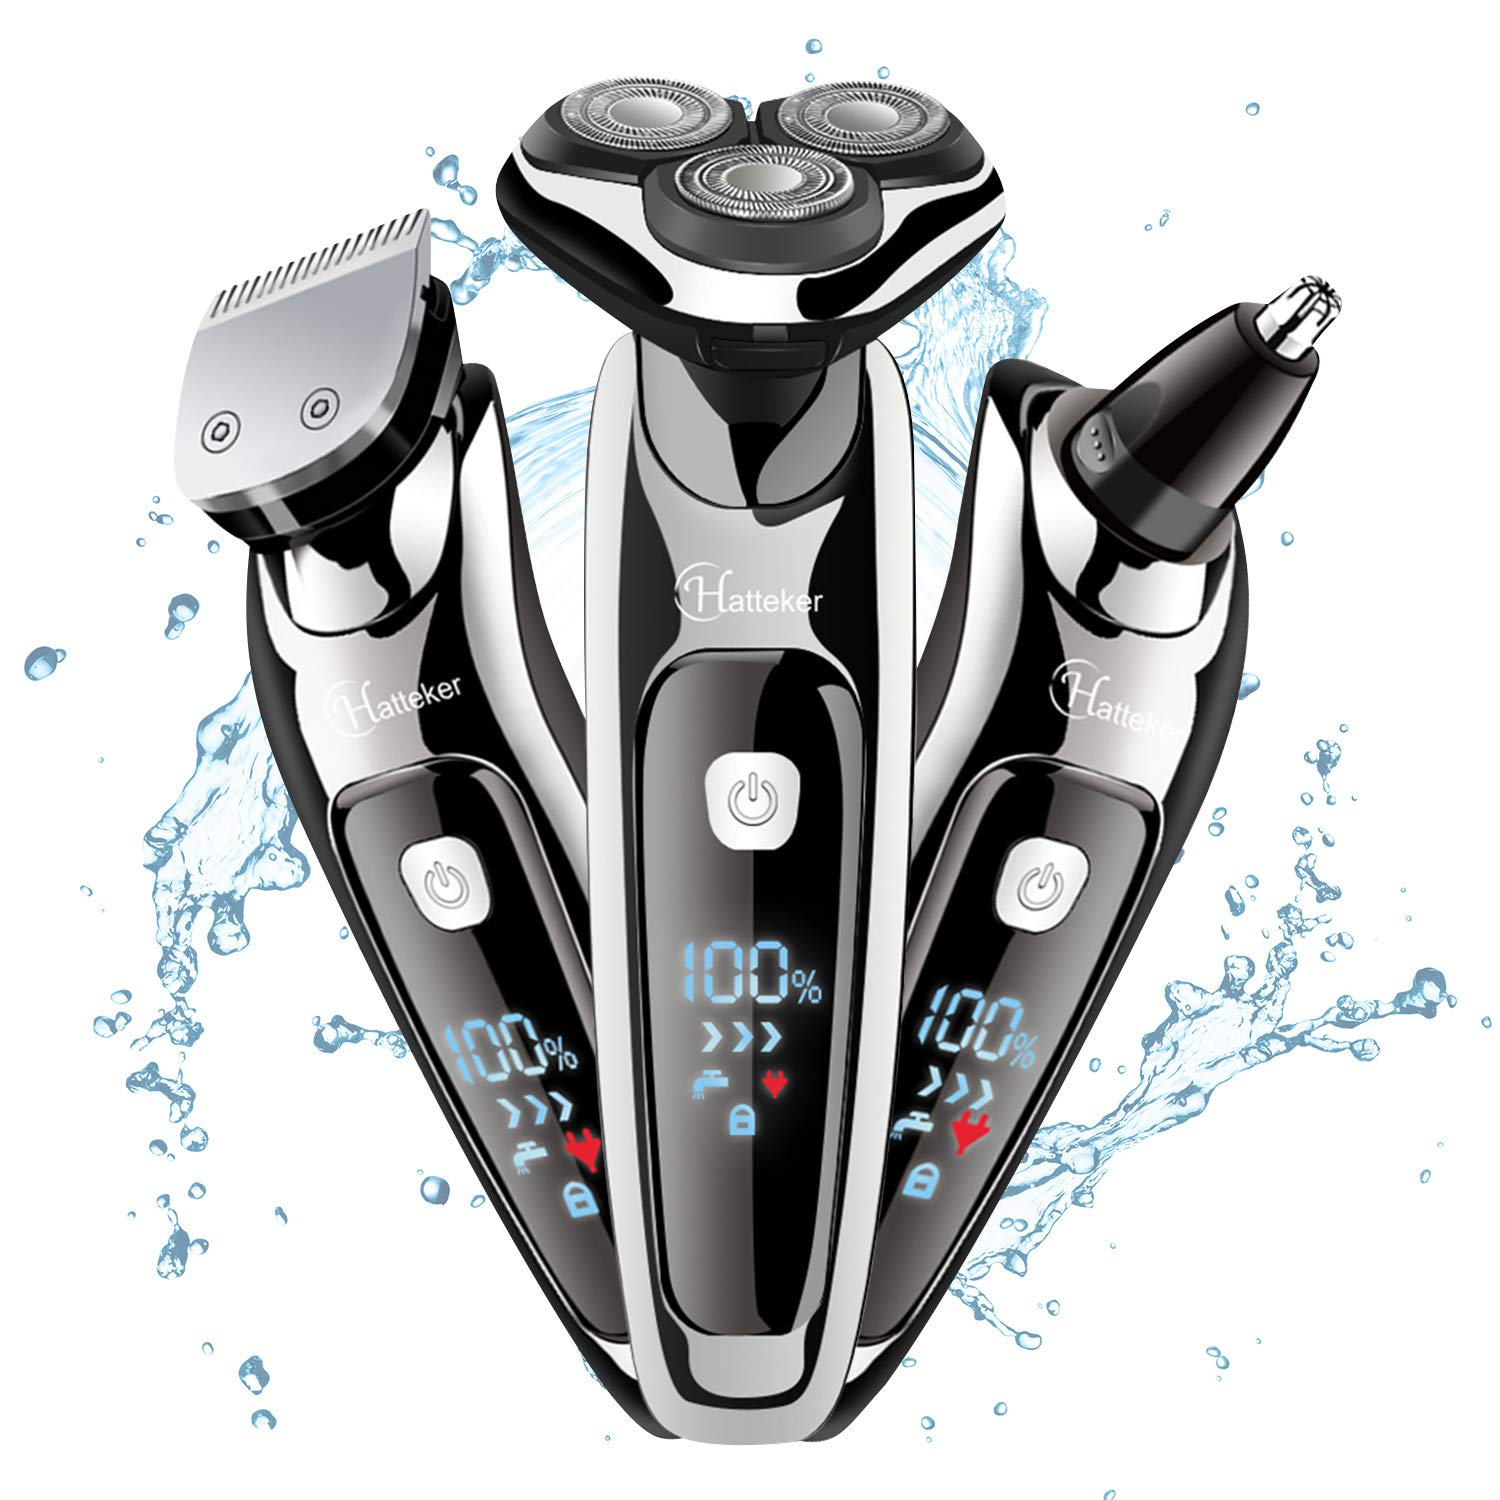 3 In 1 Mens Electric Shaver Razor Cordless Beard Trimmer Waterproof Rotary Shaver